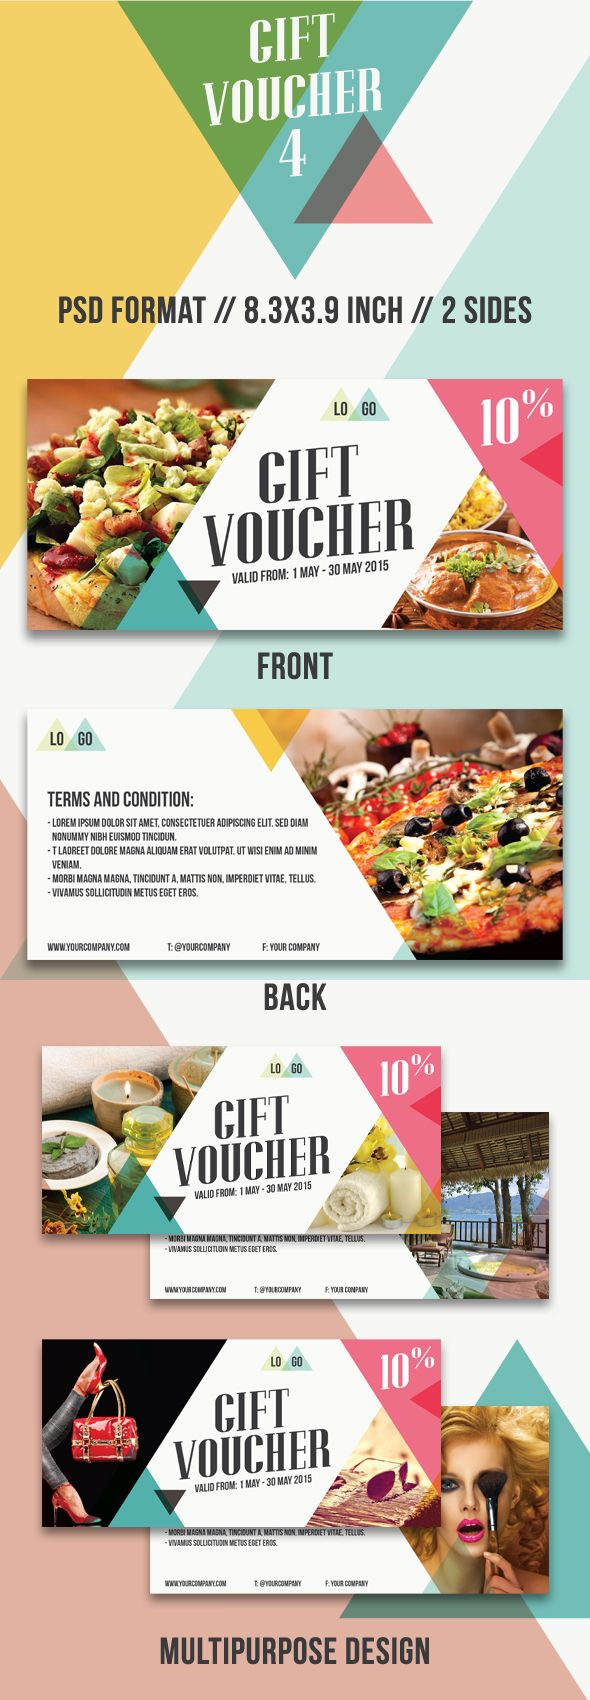 15 best gift card images on pinterest cards diy and gift buy gift voucher 4 by apriliapratama on graphicriver gift voucher 4 it is a gift voucher or discount coupon for your business such as restaurant xflitez Image collections